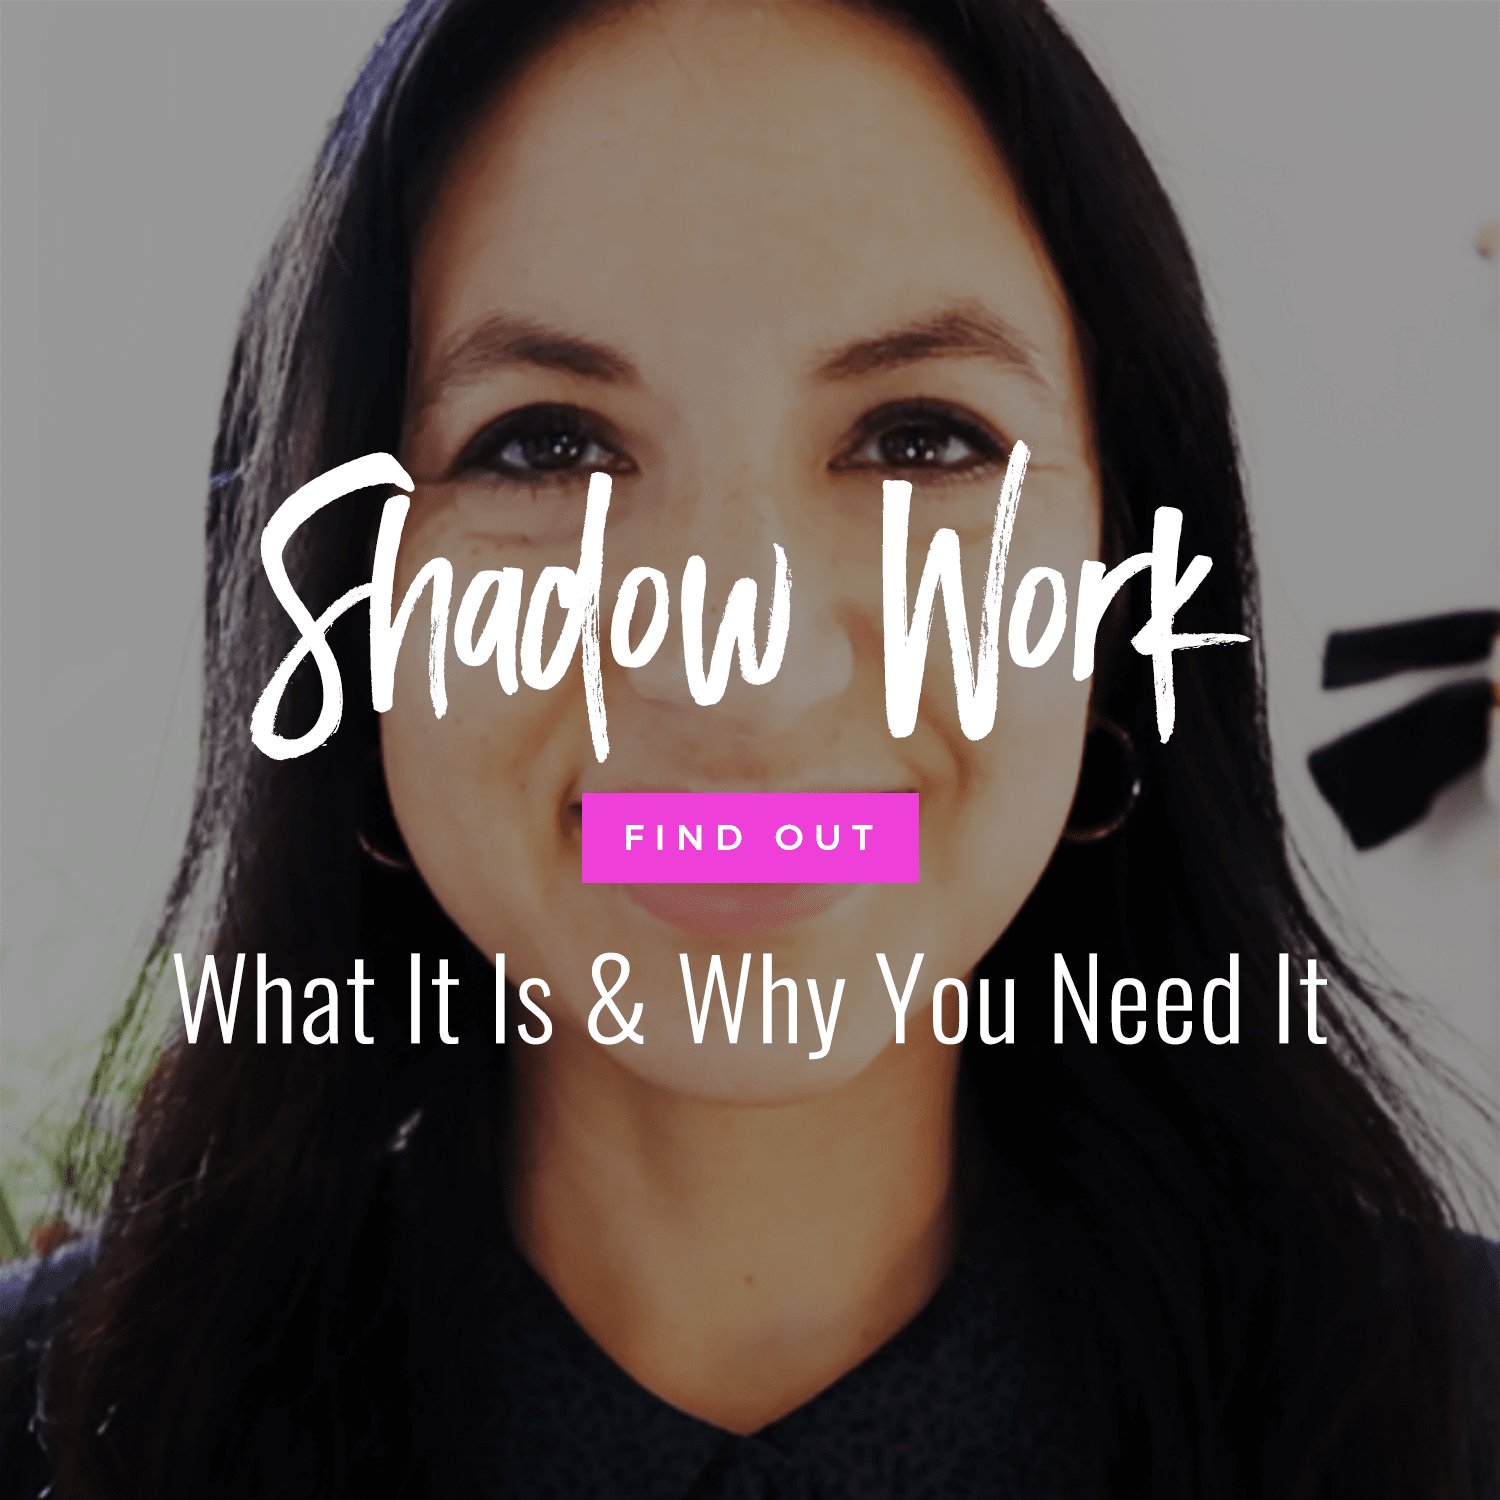 Shadow Work Training: What It Is & Why You Need It